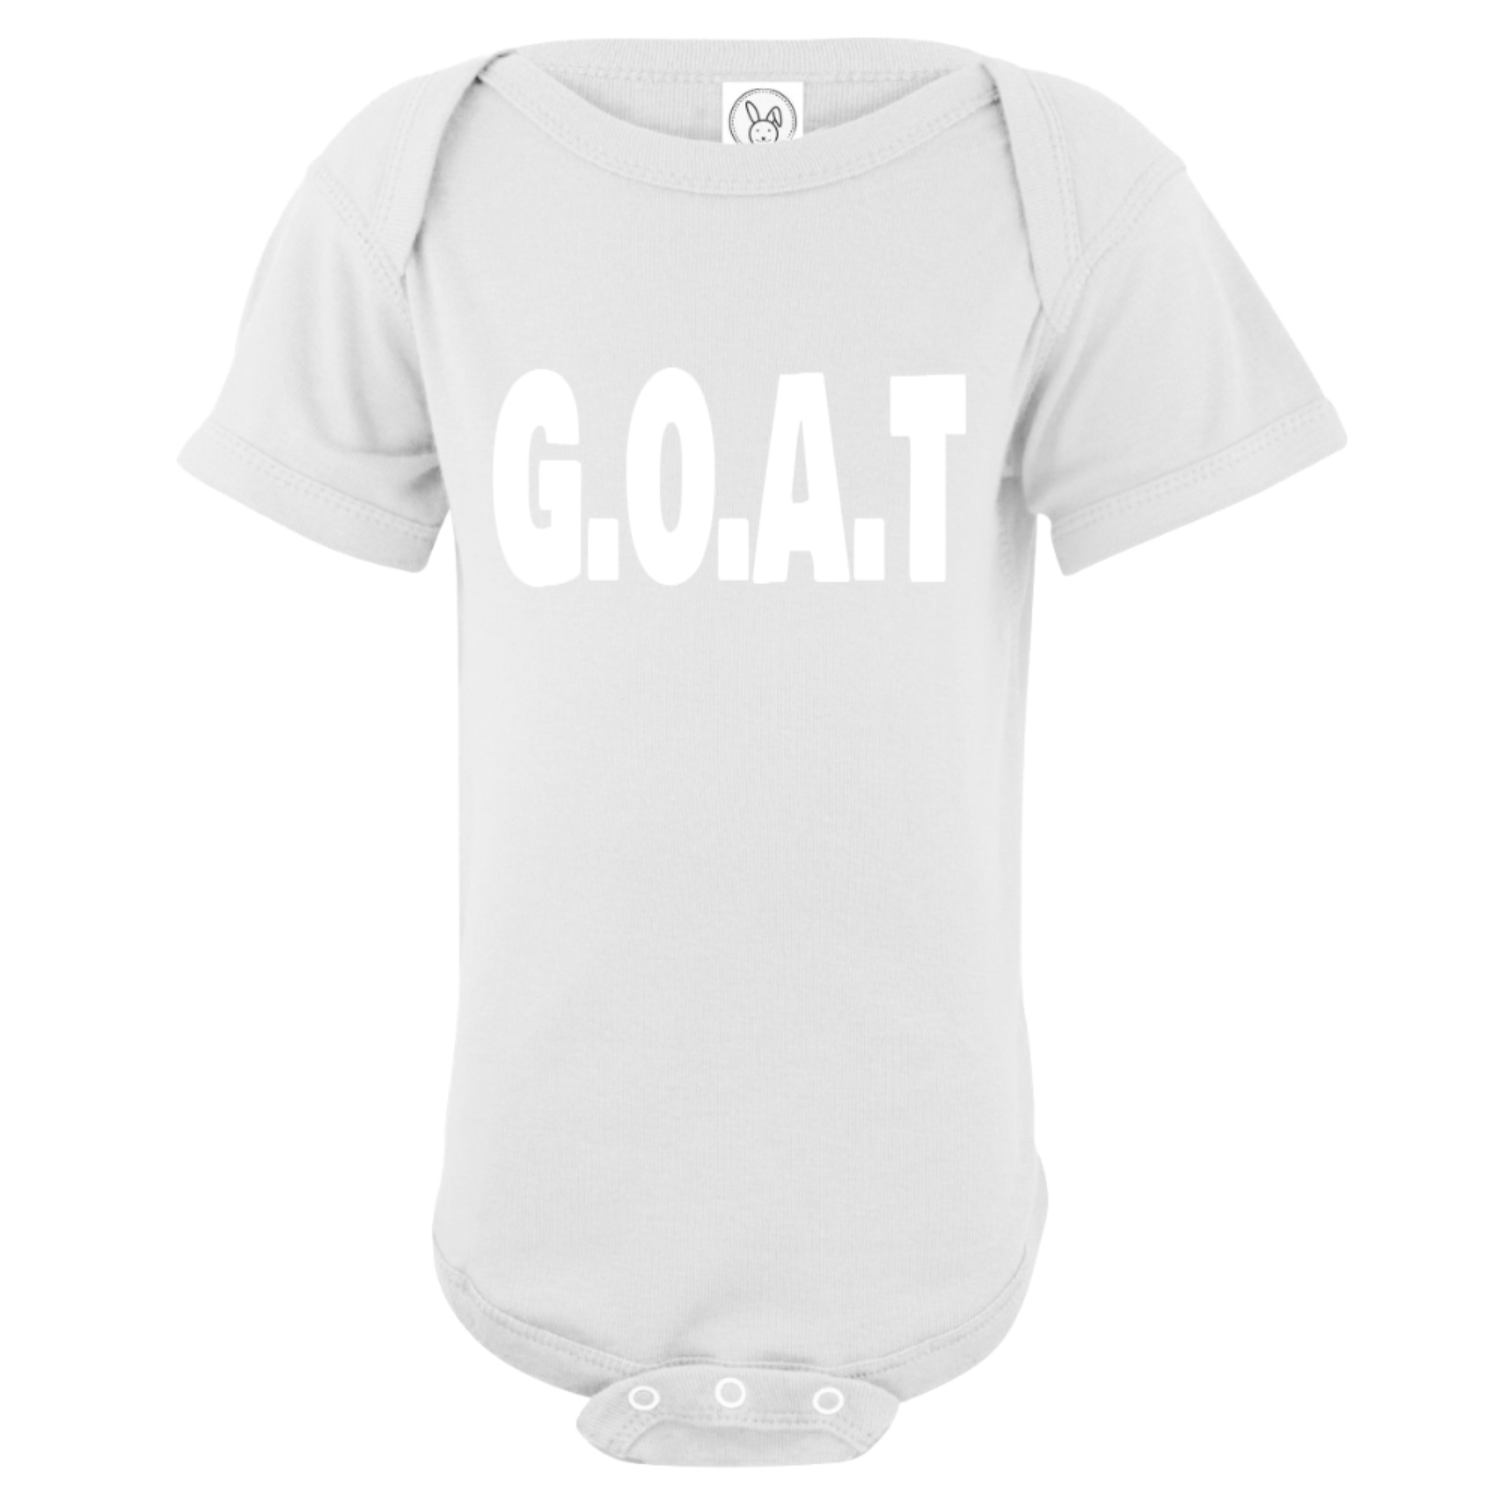 G.O.A.T Greatest Of All Time Baby Bodysuit White